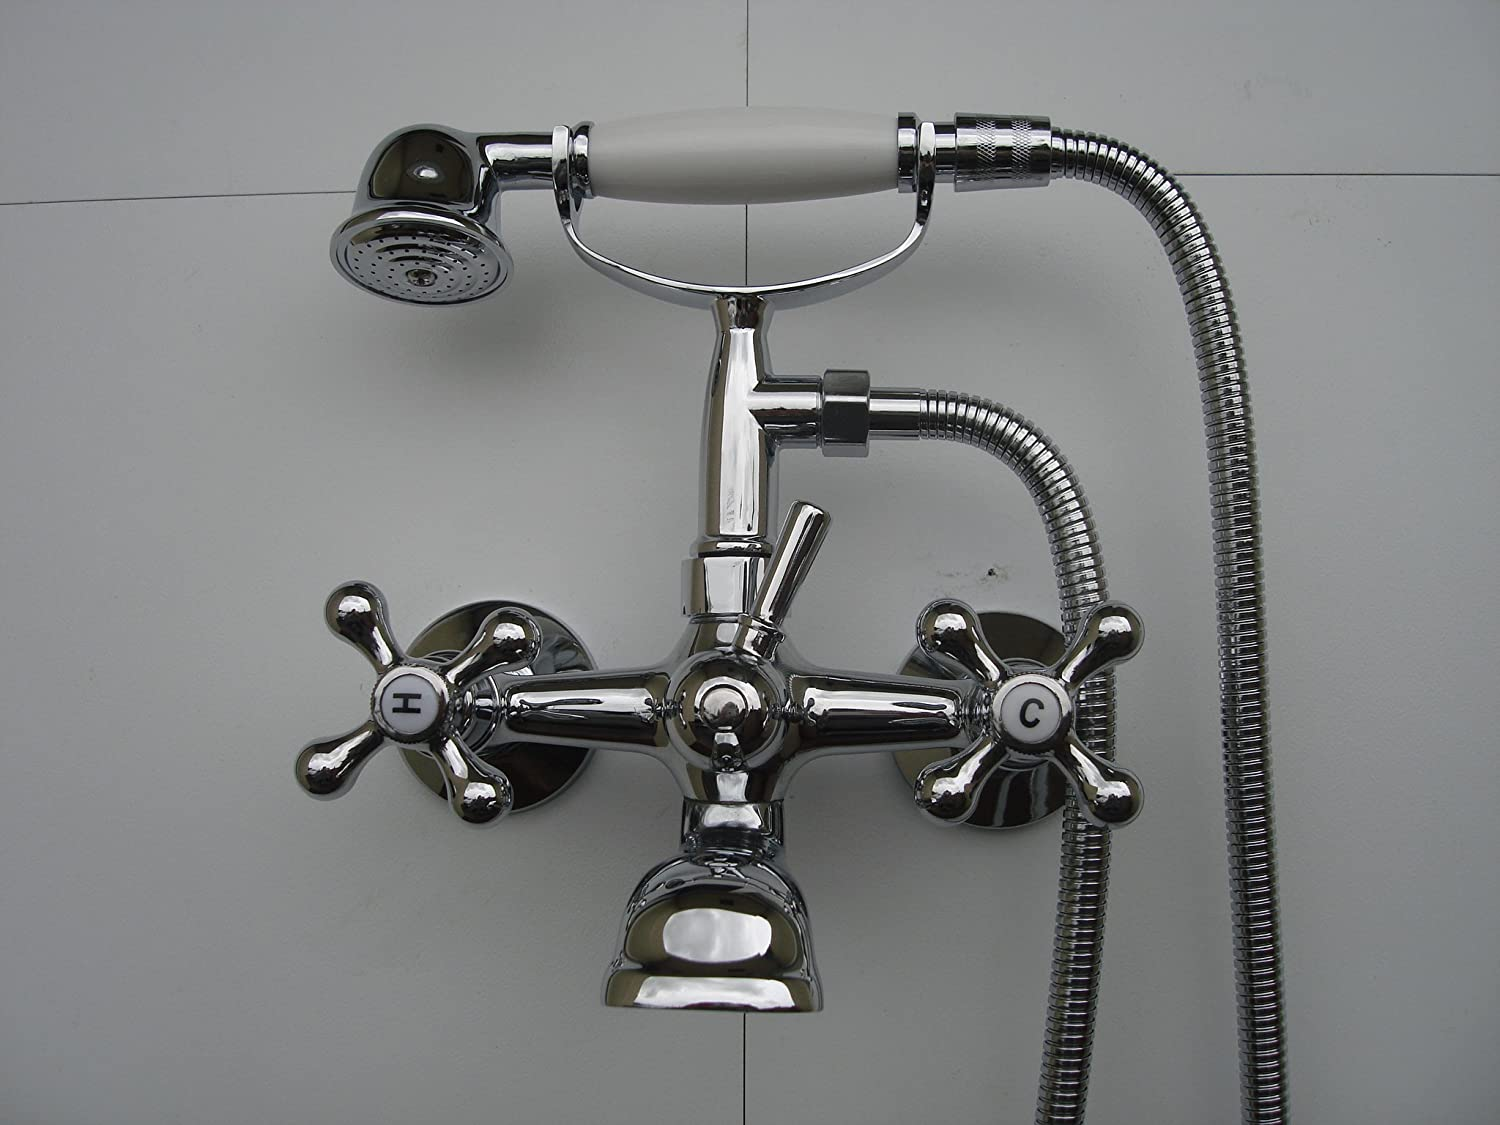 100 low pressure bath shower mixer traditional bath taps uk low pressure bath shower mixer ourtaps victorian style low pressure bath shower mixer tap 019n2